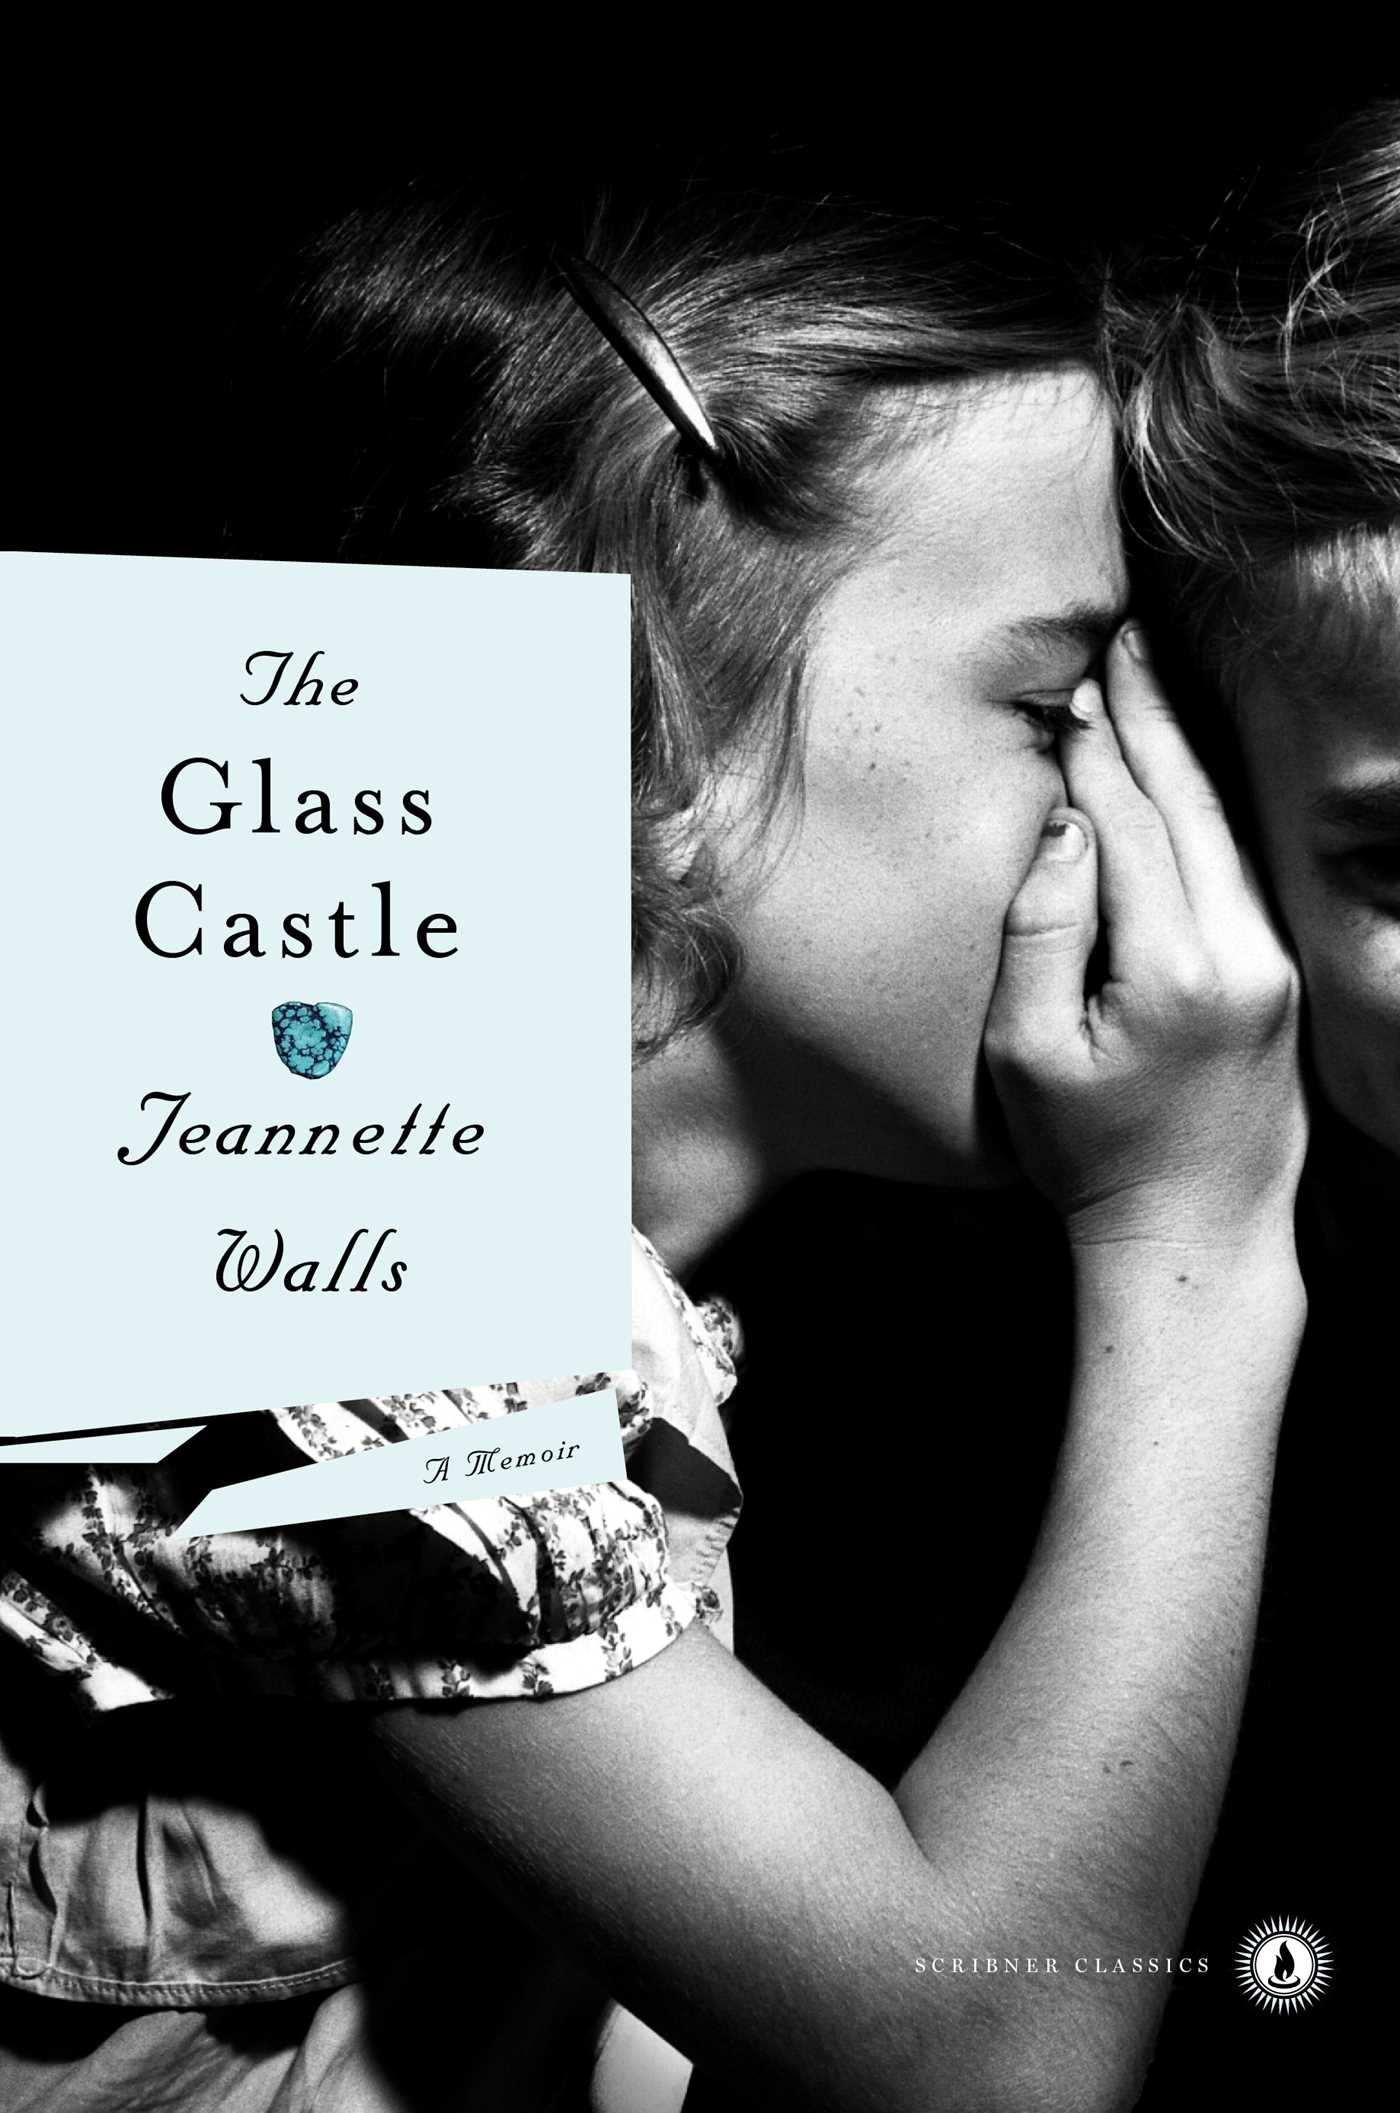 The glass castle 9781439156964 hr